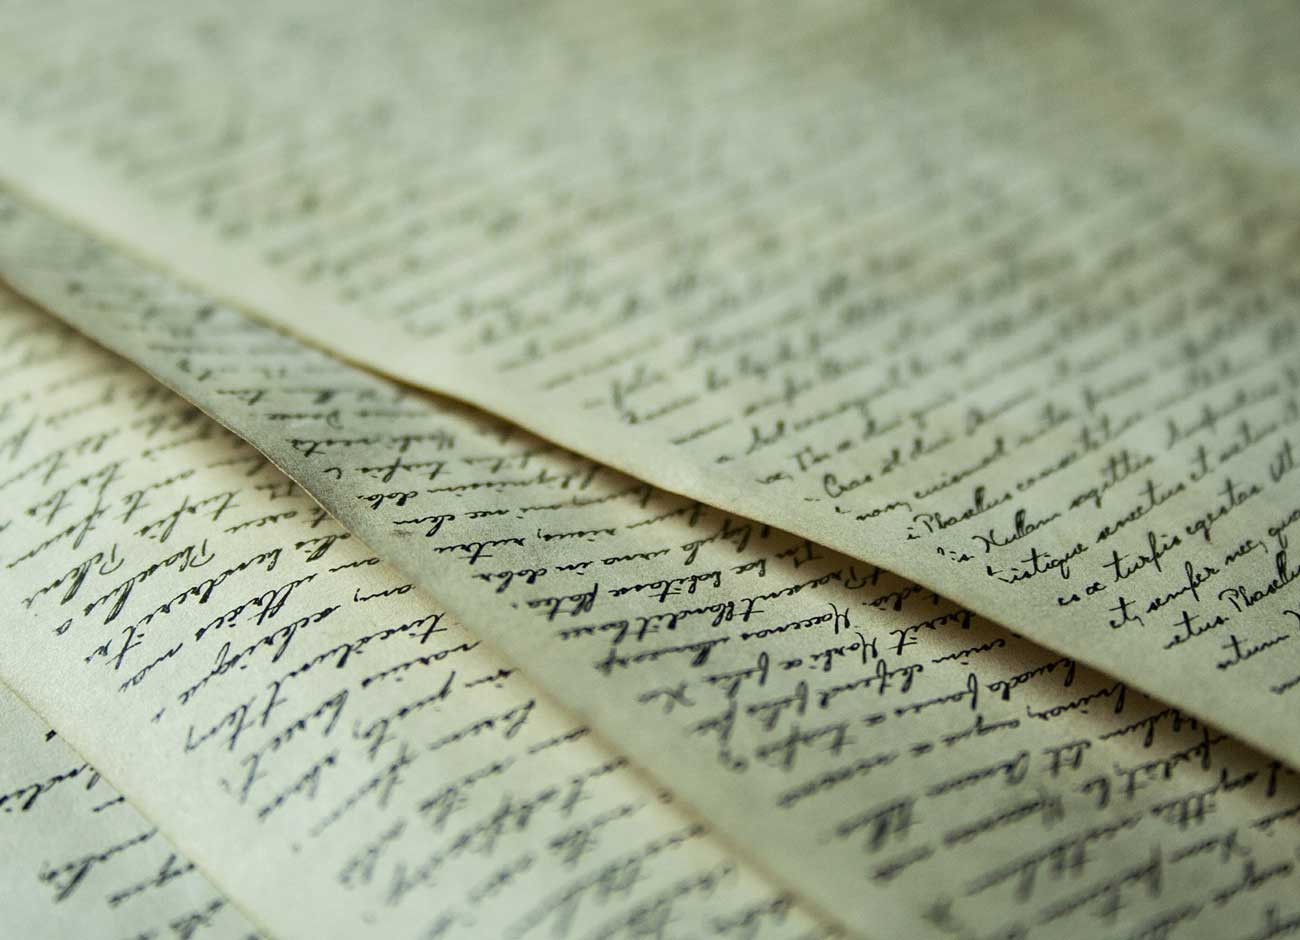 a stack of parchment paper with cursive writing